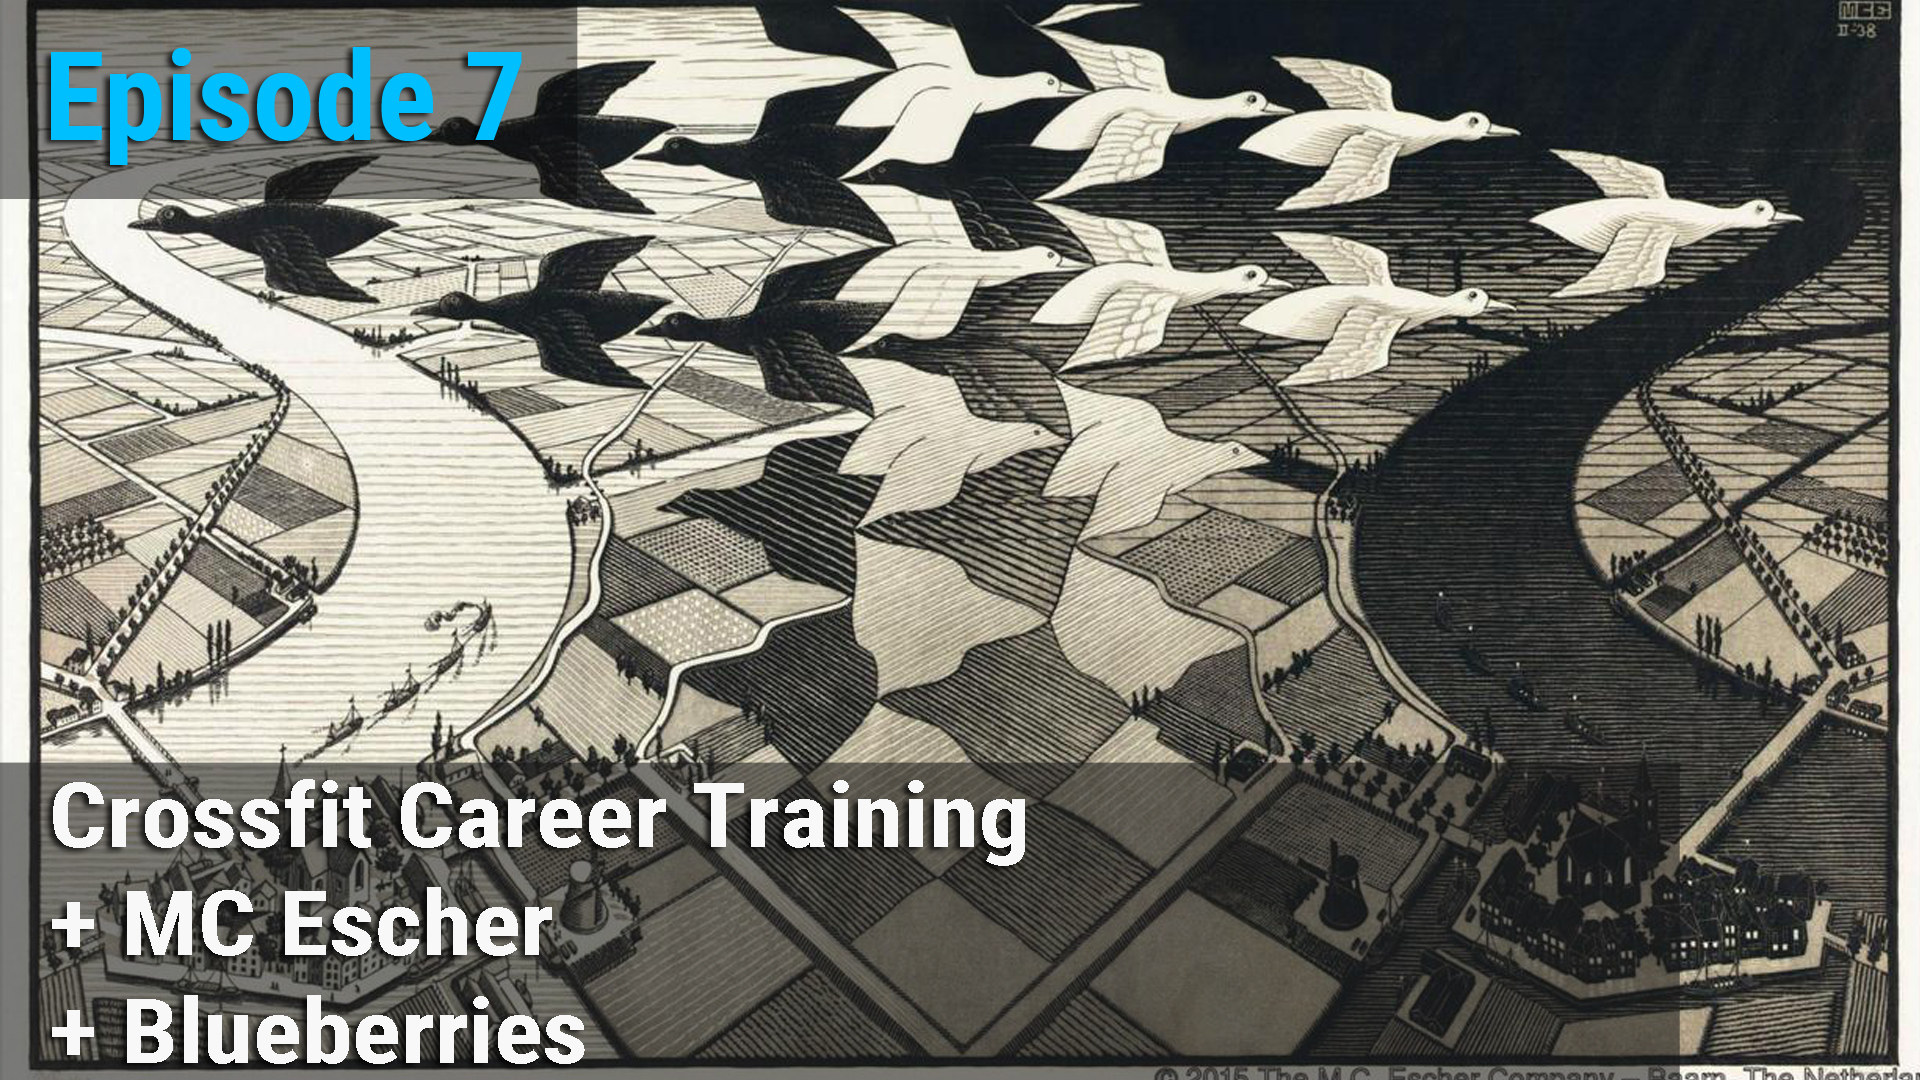 Crossfit Career Training + MC Escher + Blueberries